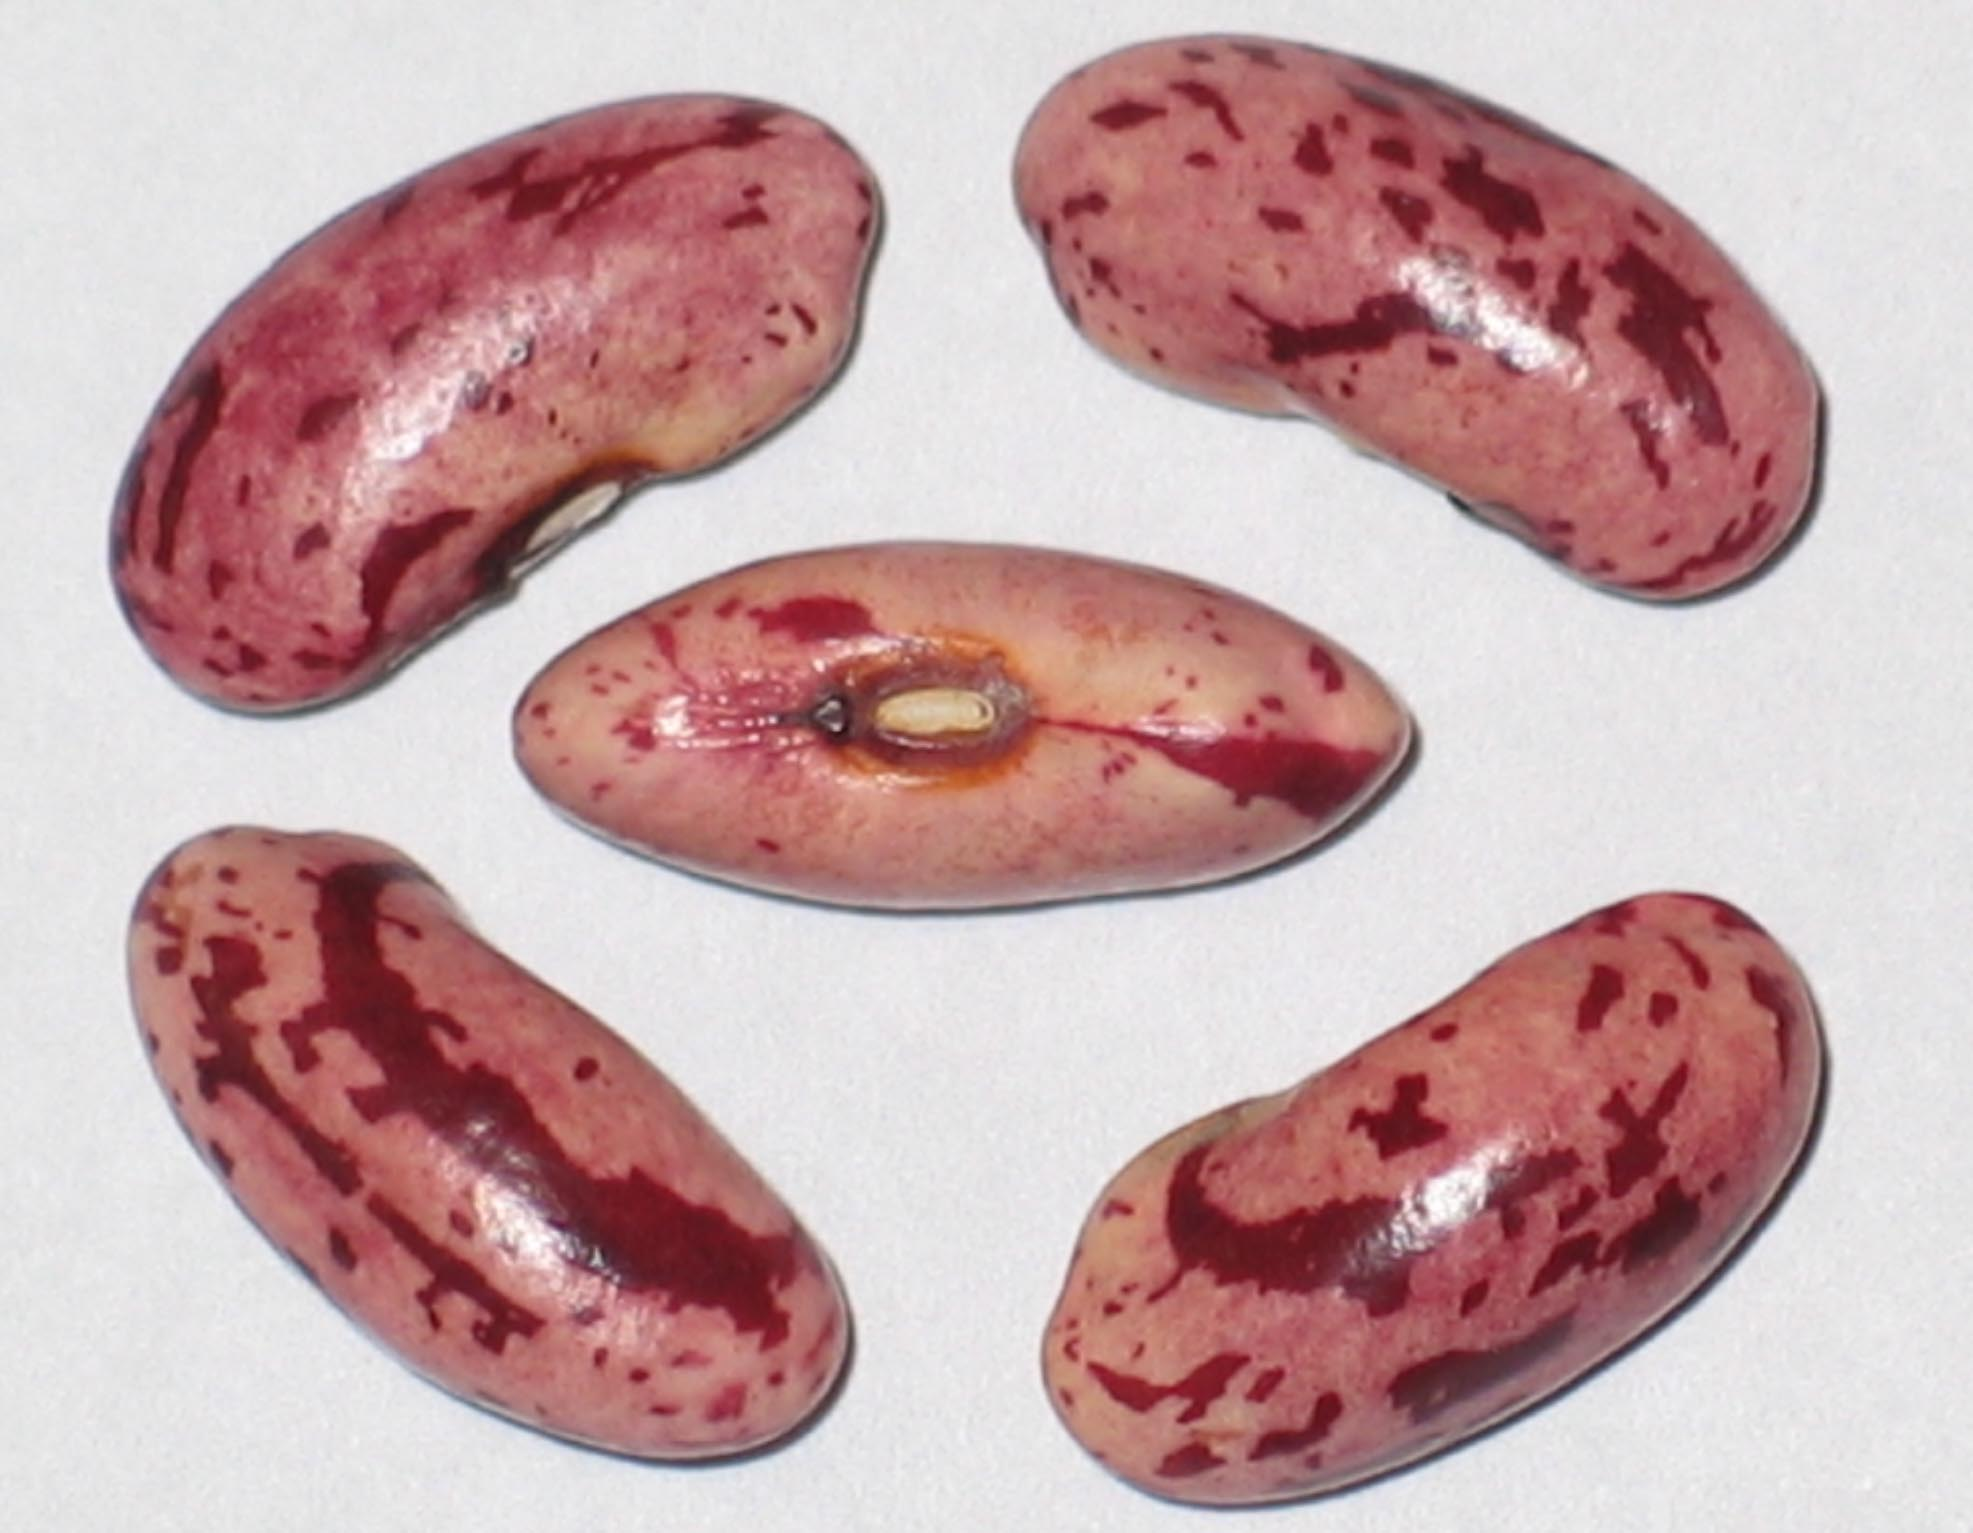 image of Candy beans